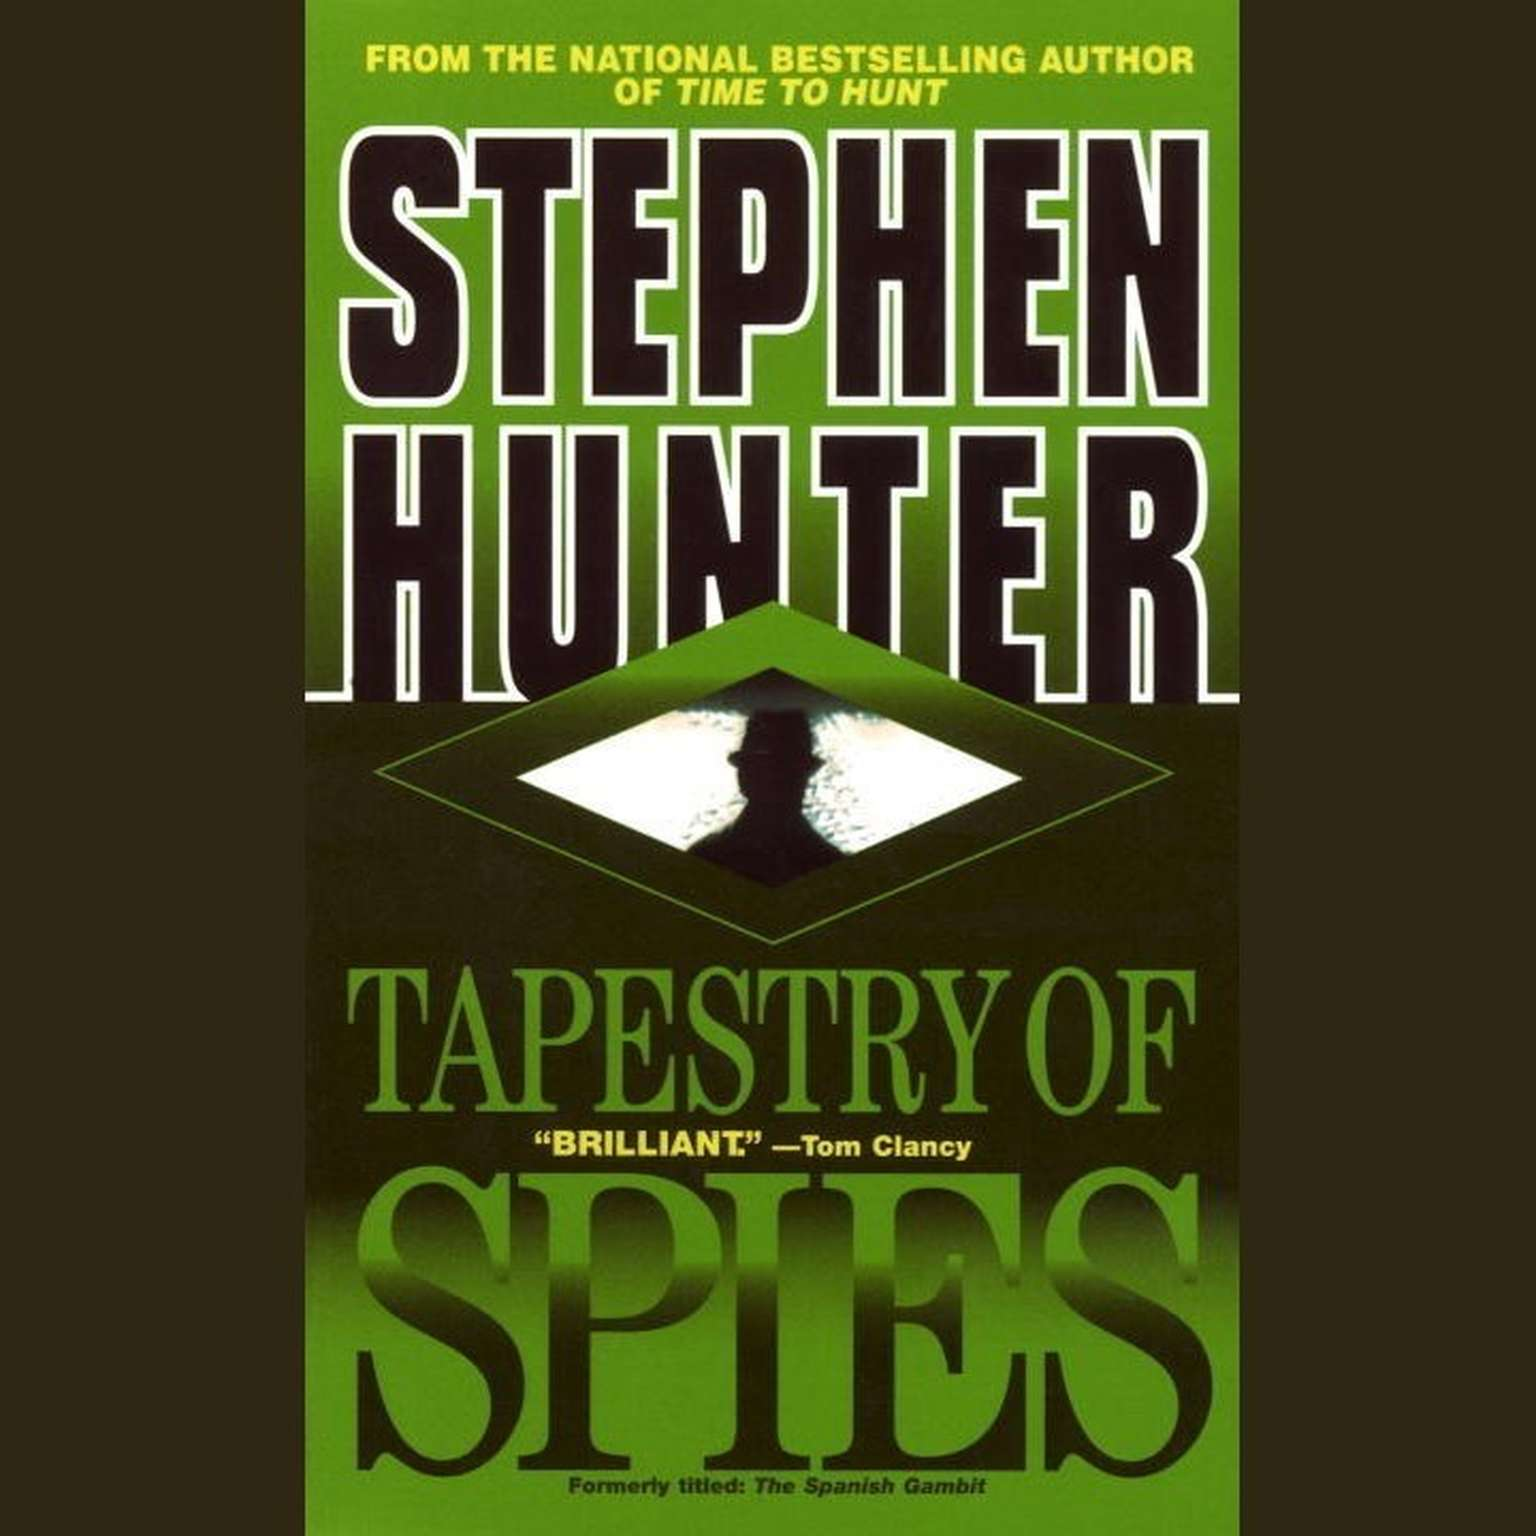 Tapestry of Spies (Abridged) Audiobook, by Stephen Hunter